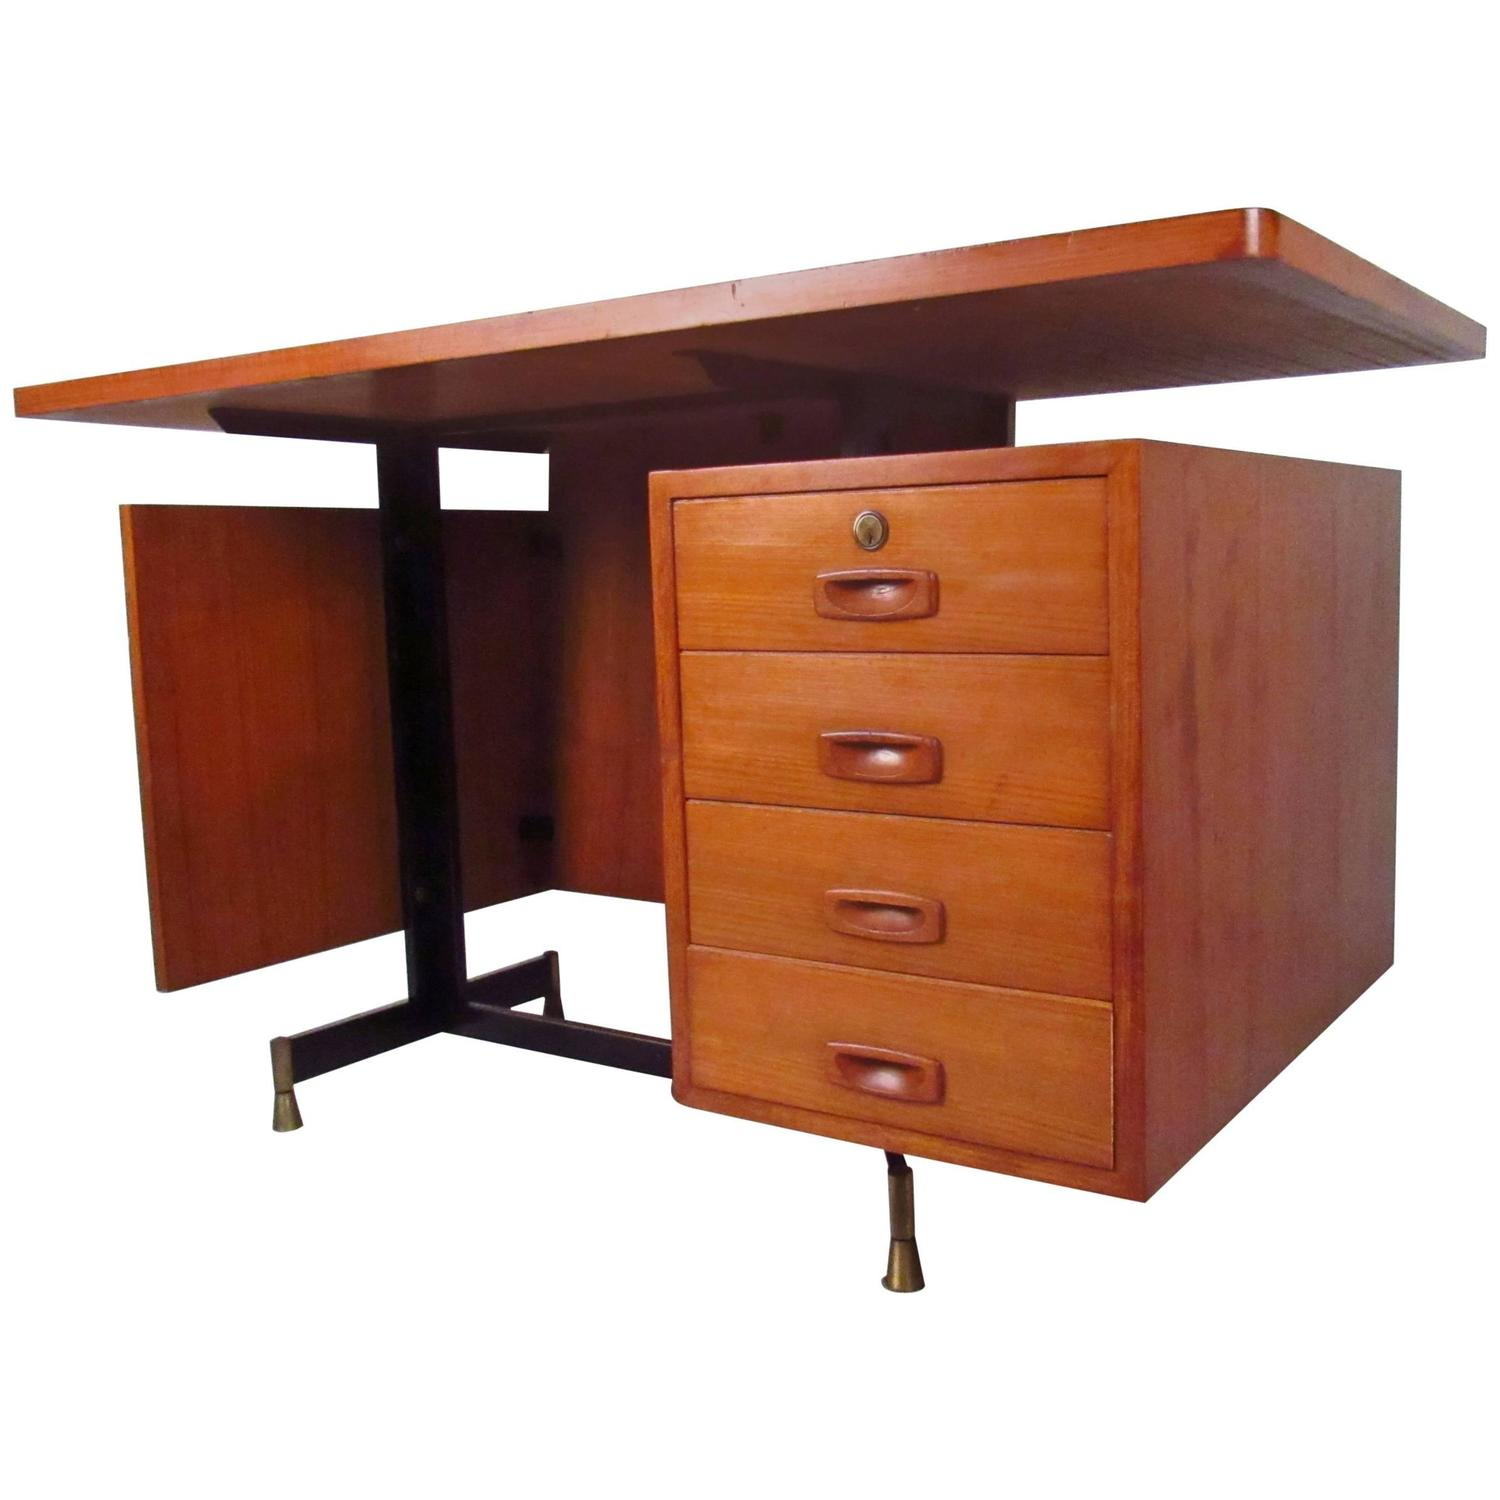 Midcentury danish floating top desk for sale at 1stdibs for Floating desk for sale